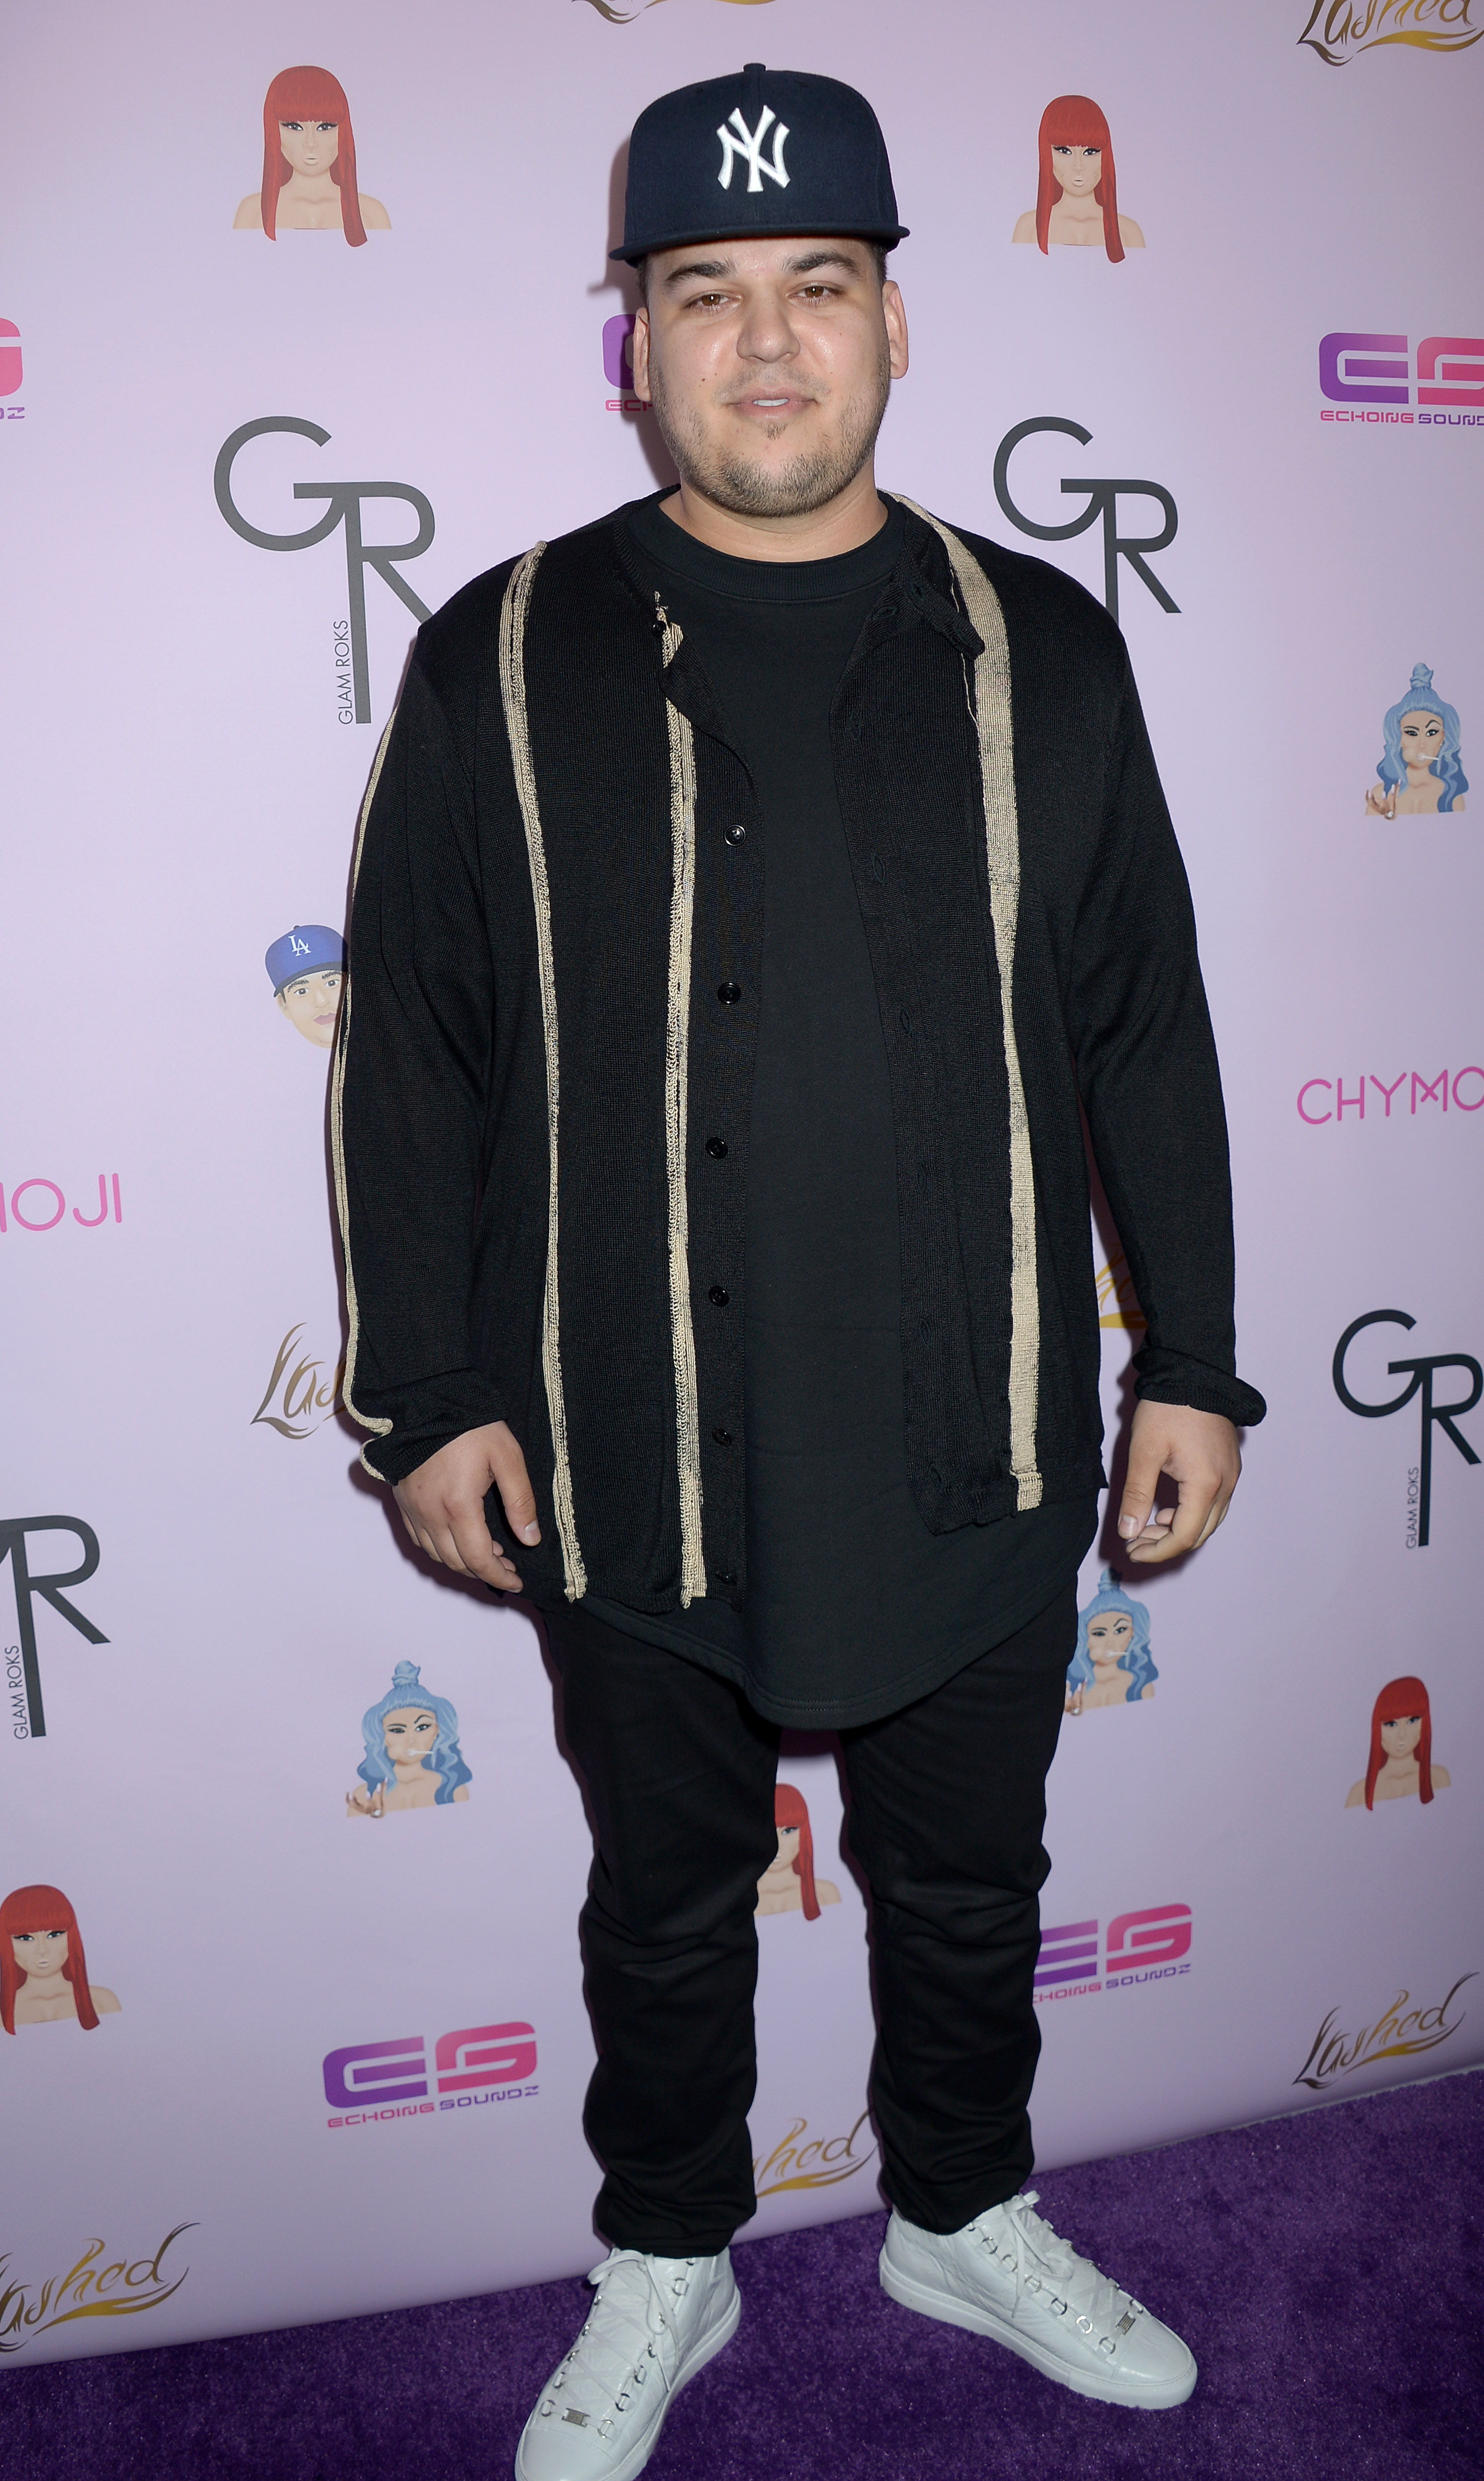 Fit Dad! Rob Kardashian's 'Most Fulfilling' Workout Is 'Running After' His Daughter Dream